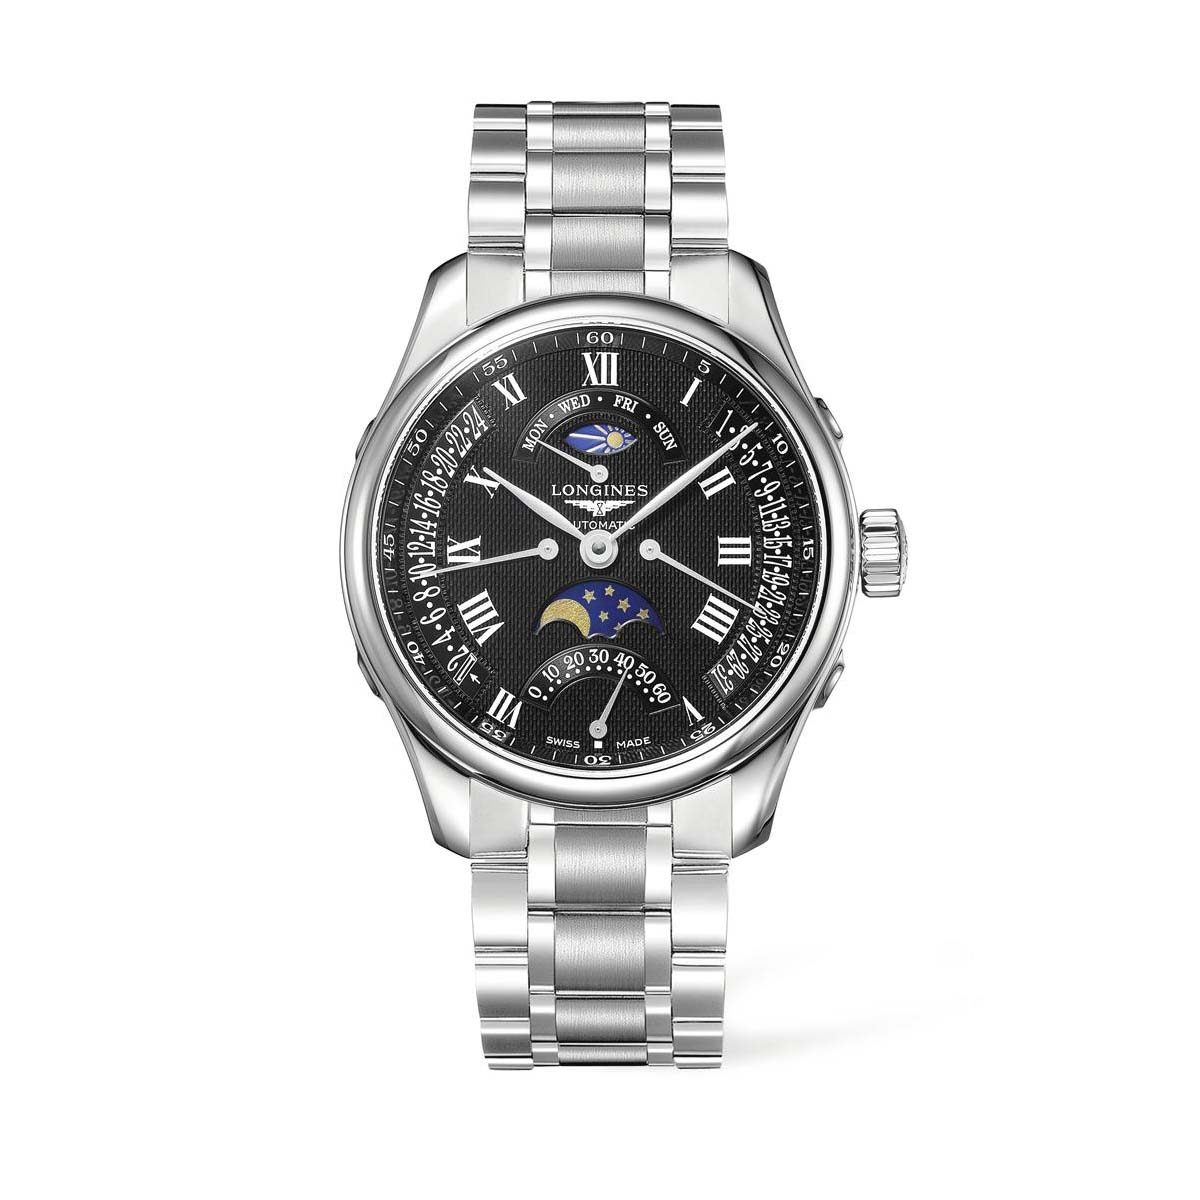 L27394516 — The Longines Master Collection 44mm Automatic